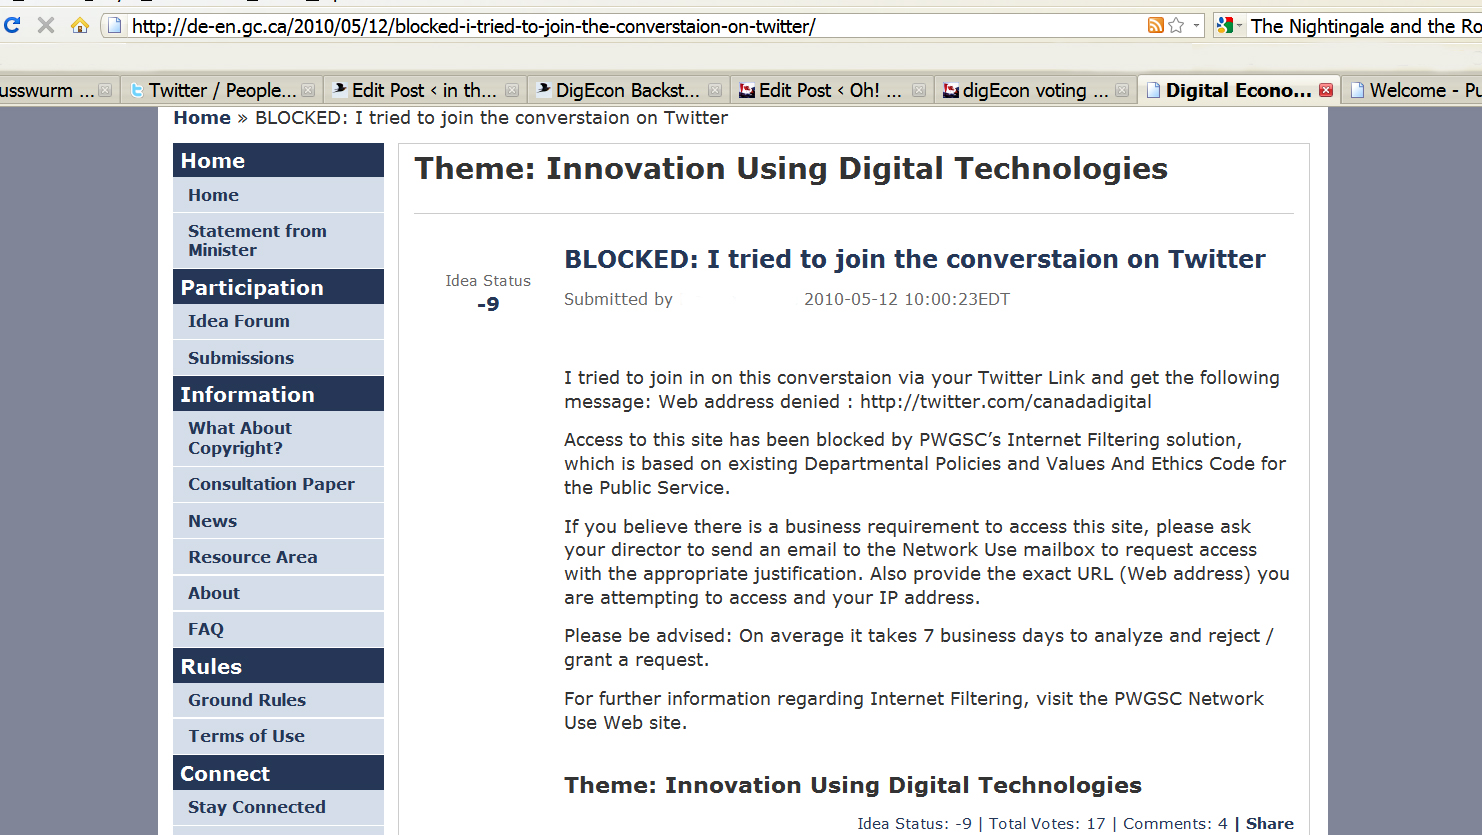 Digital Economy forum entry about software conflict between Twitter and the Canadian Government websites causing users to be blocked from sharing